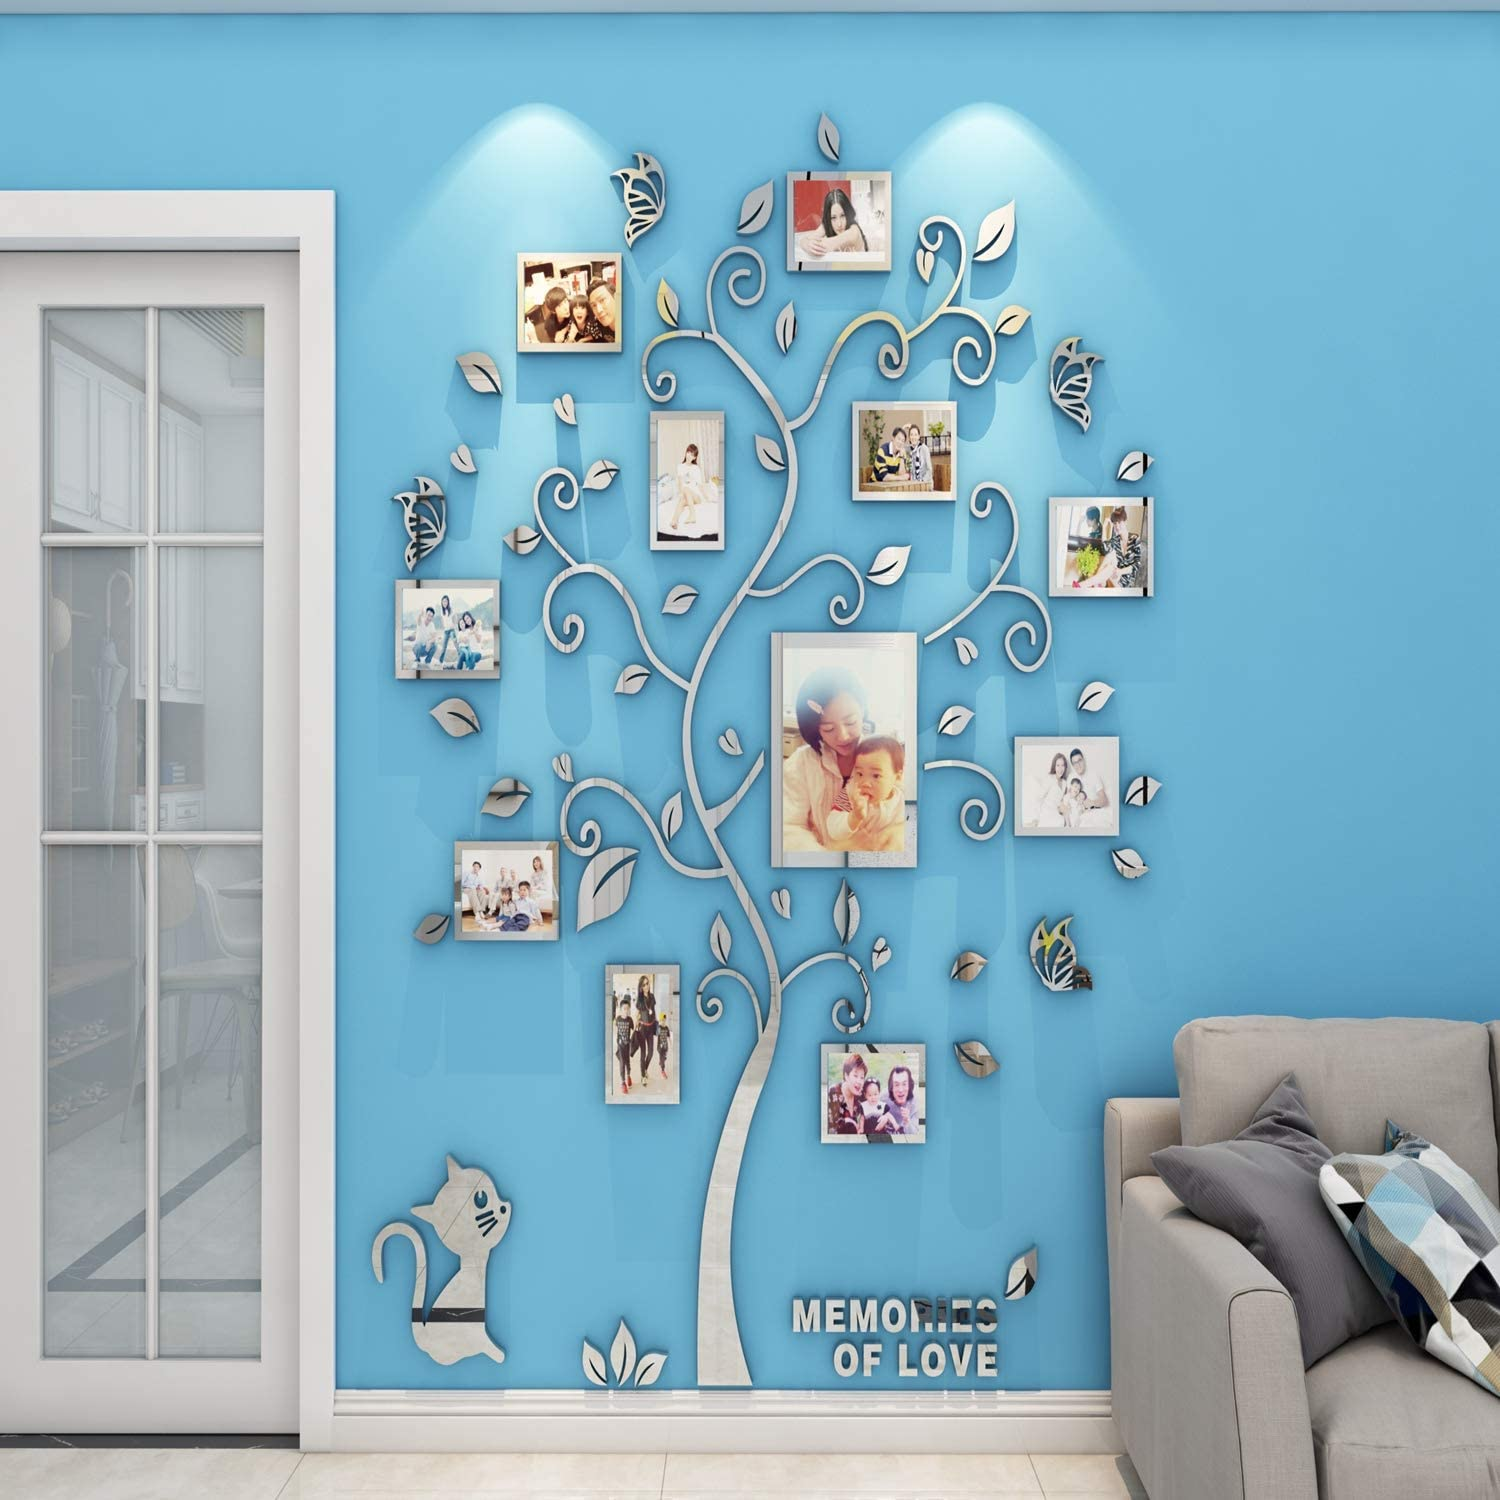 Unitendo 3D Acrylic Black Tree Wall Stickers Photo Frames Family Tree Wall Decal Easy to Install &Apply DIY Photo Gallery Frame Decor Sticker Home Art Decor (Silver, Large).…